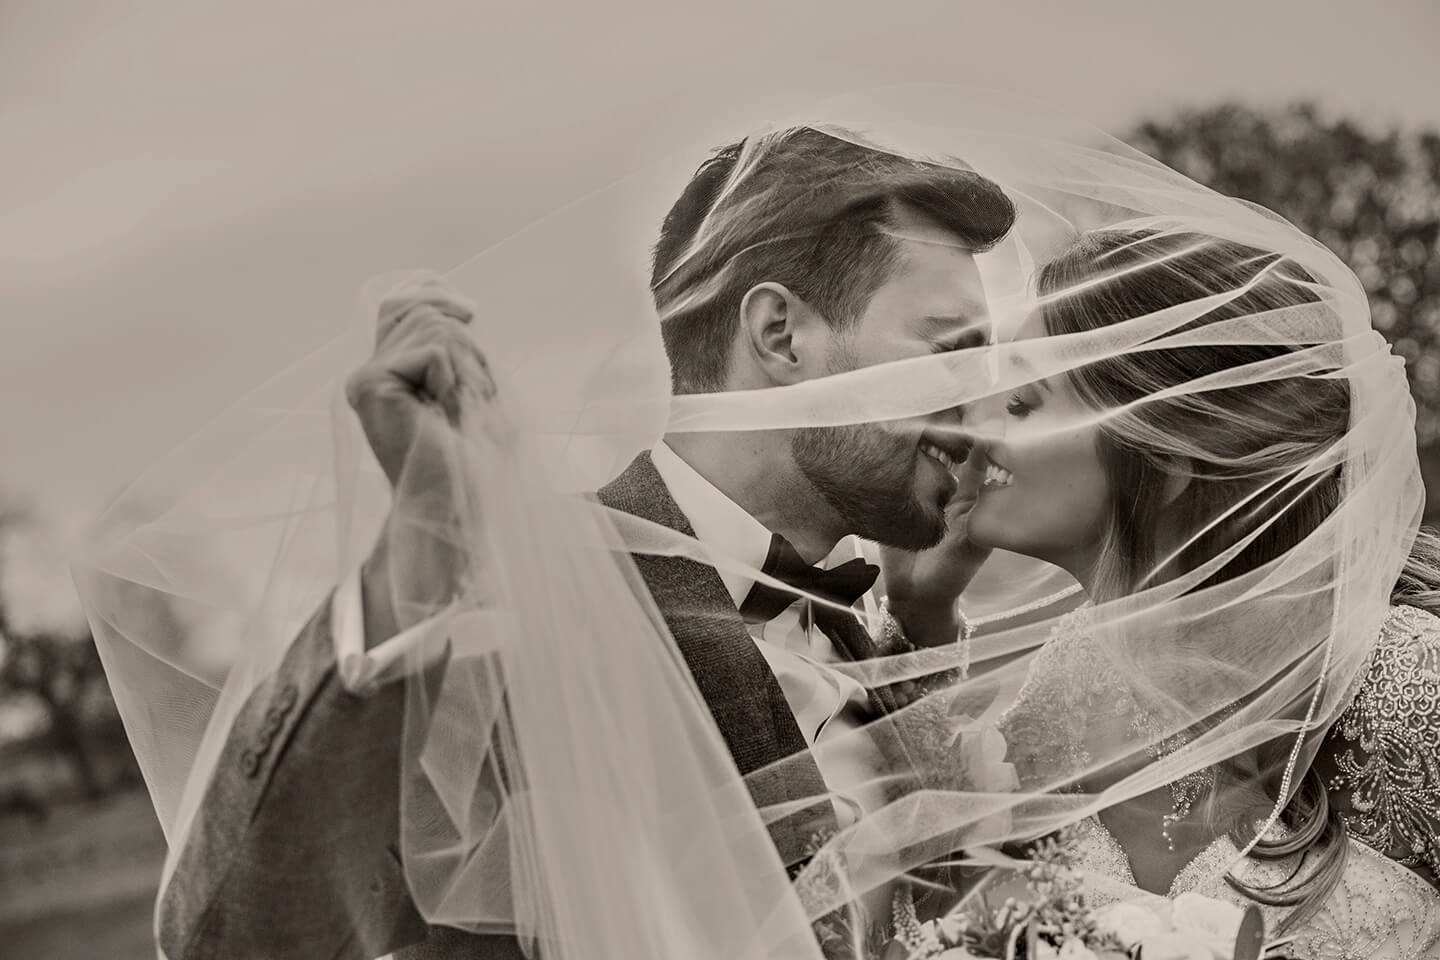 The happy couple kiss under the bride's wedding veil at this stunning country wedding venue in Cambridgeshire